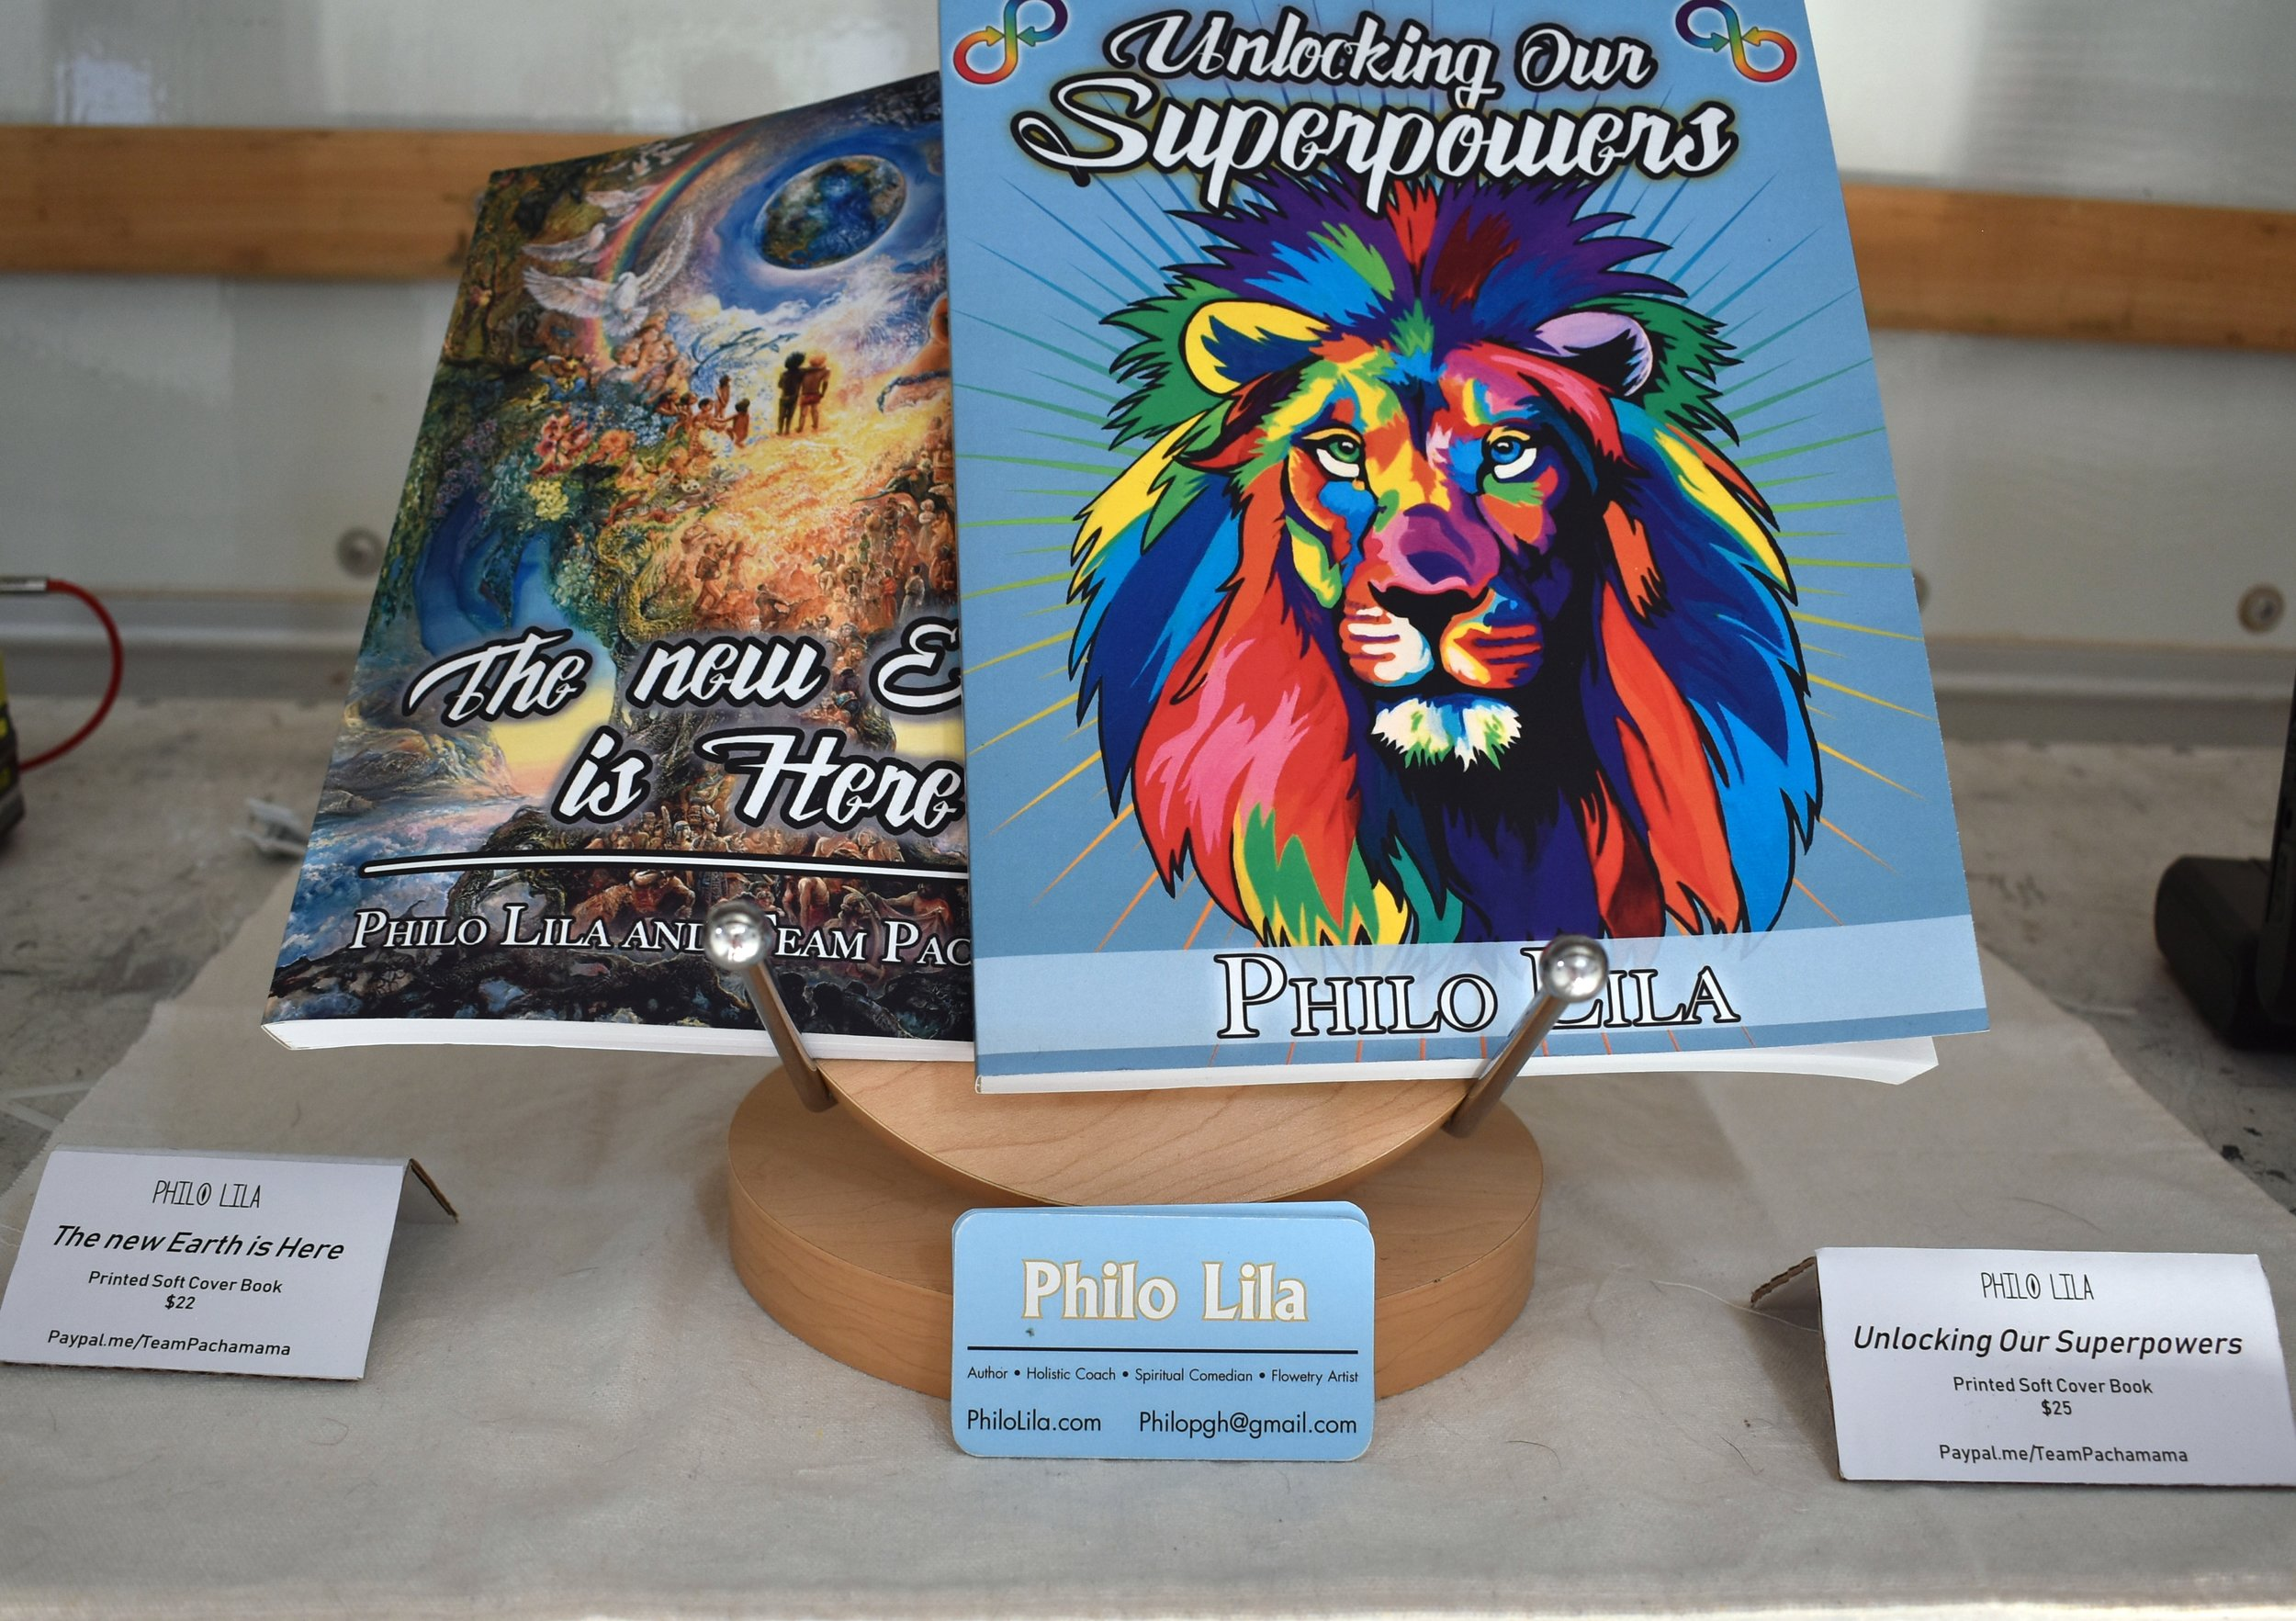 philo lila - The new Earth is HerePrinted Soft Cover Book$22&Unlocking Our SuperpowersPrinted Soft Cover Book$25Website